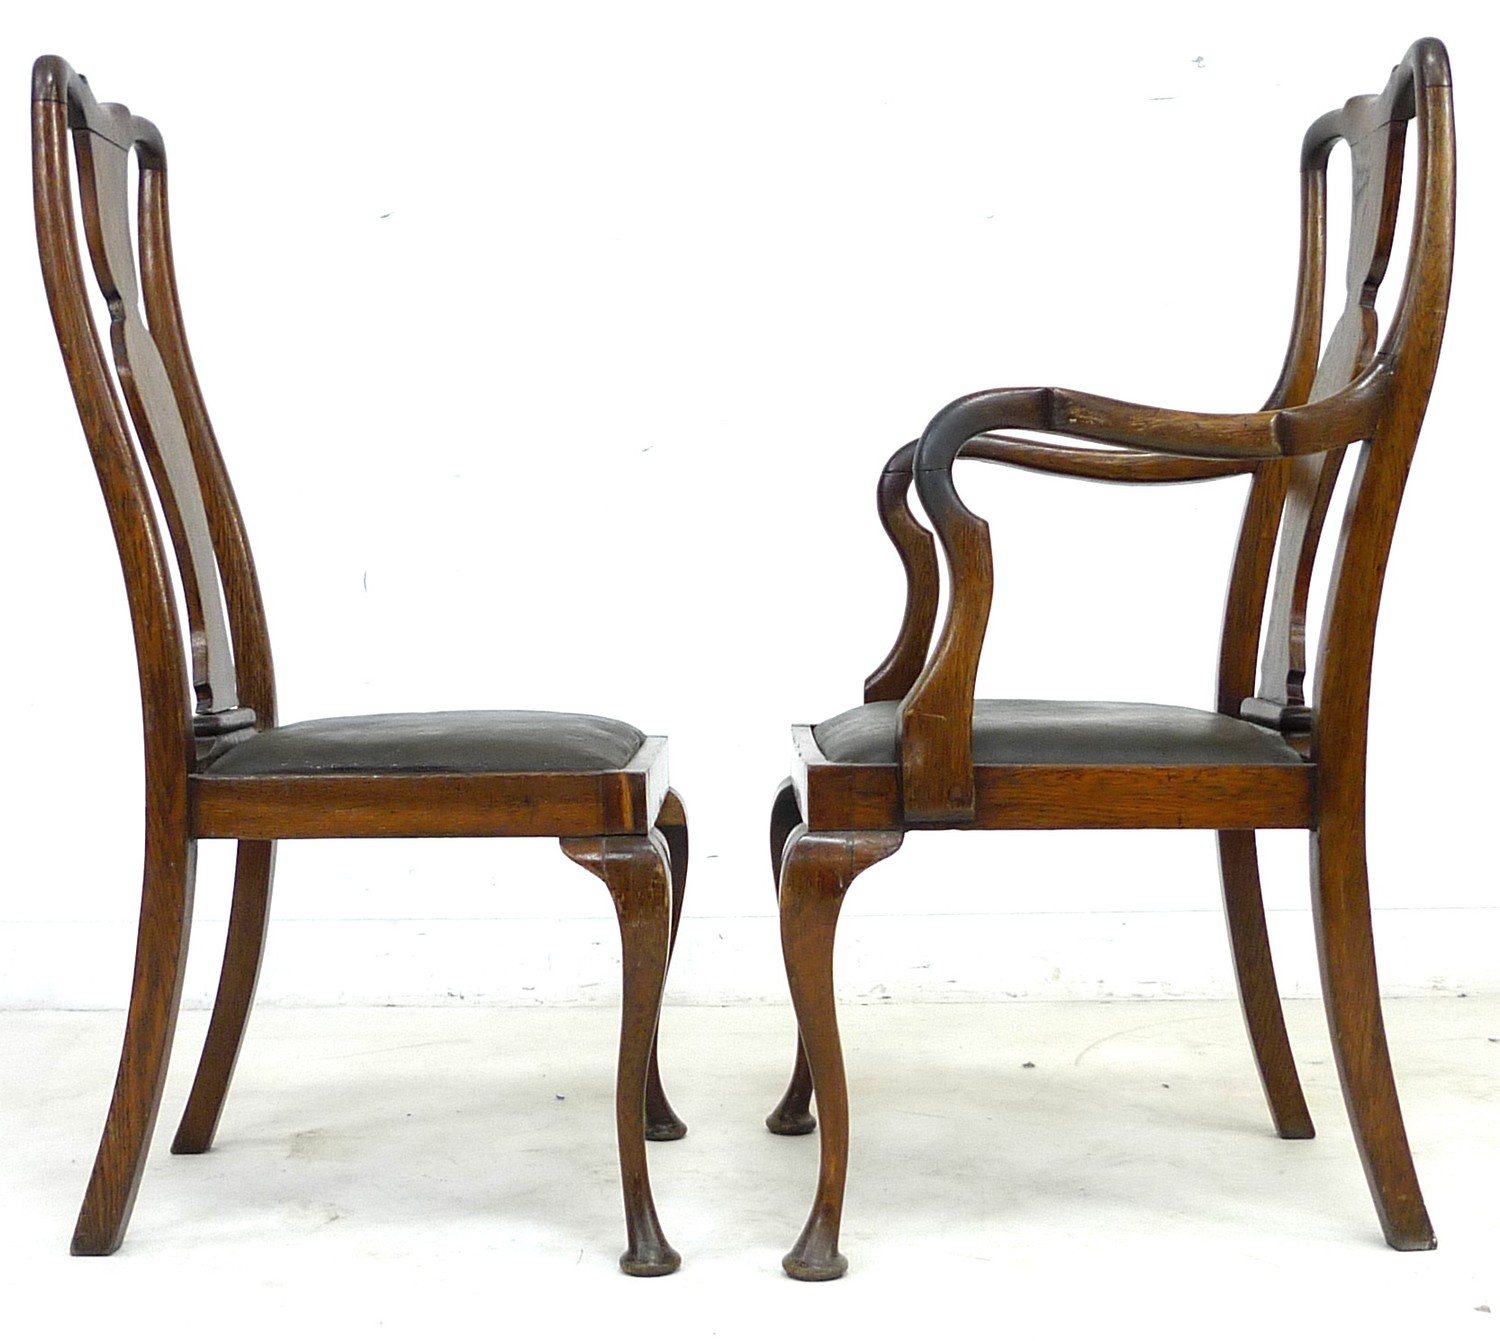 A set of six early 20th century oak dining chairs, 52 by 55 by 106cm high, in Queen Anne style - Image 3 of 4